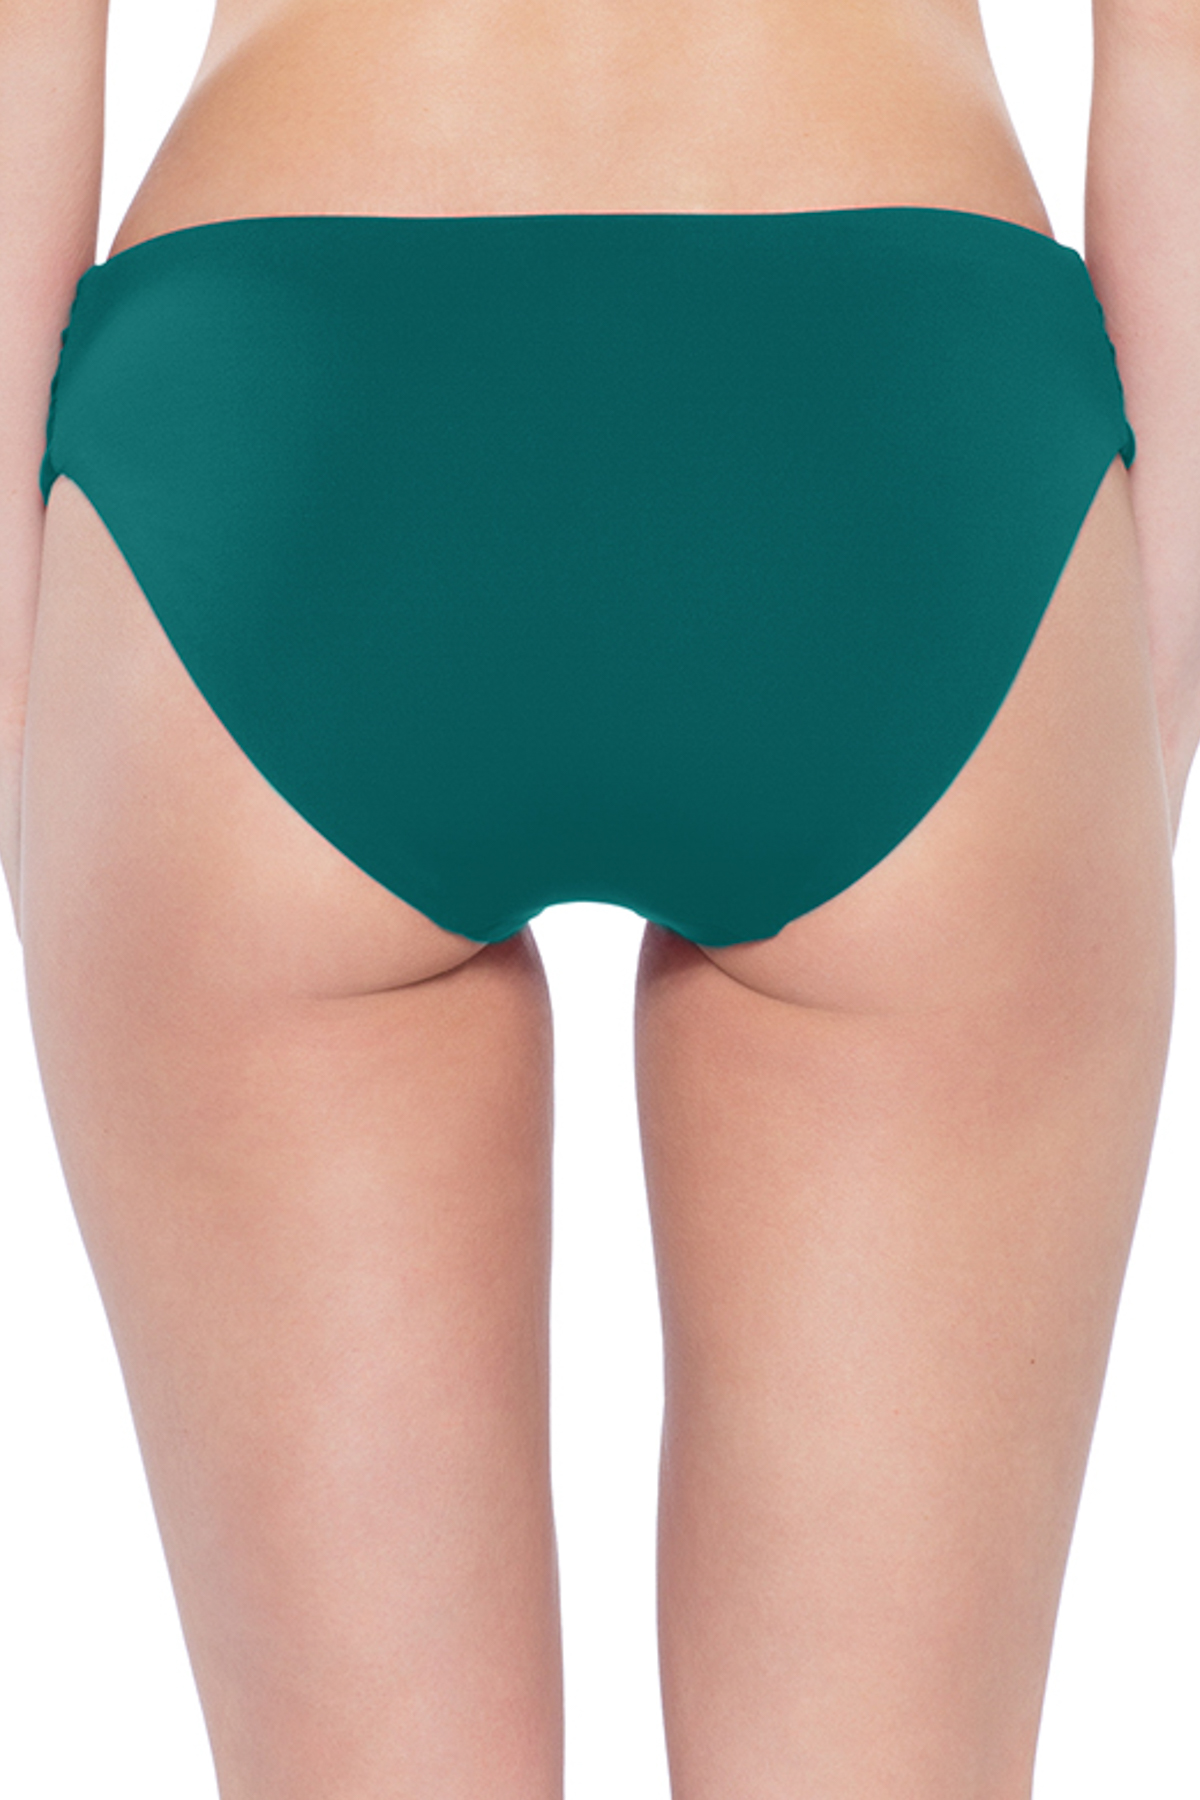 American Shirred Tab Side Hipster Bikini Bottom - Fern 4